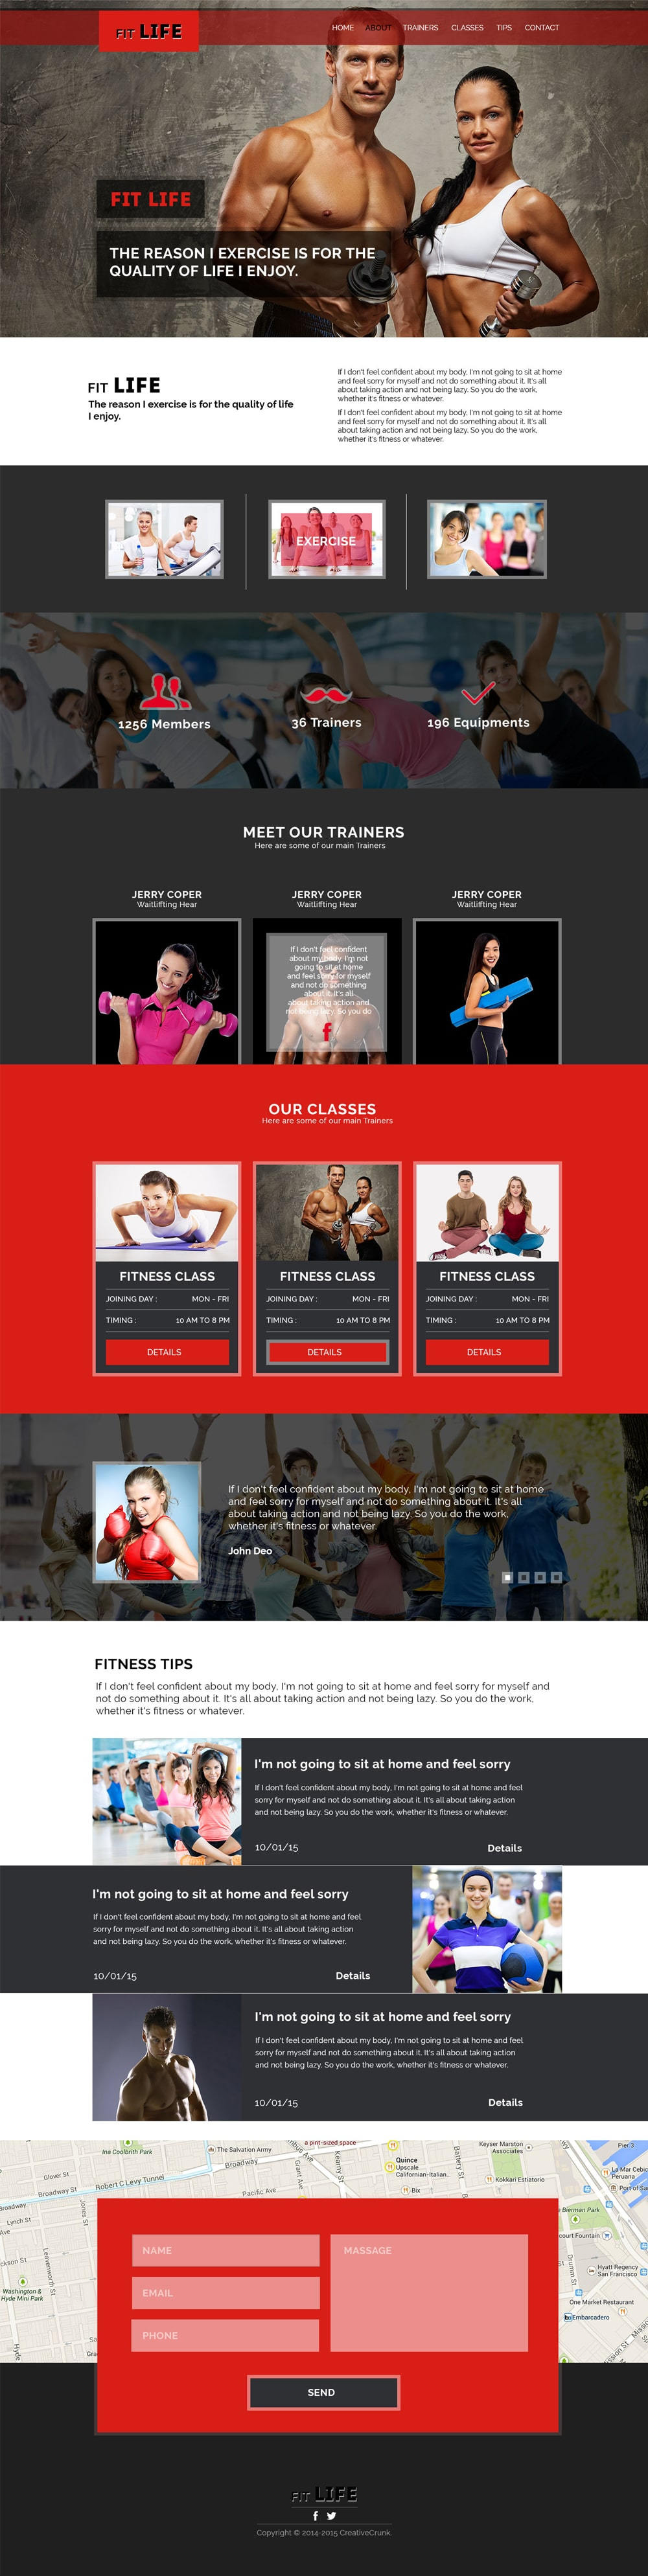 FitLife – Fitness One Page Template PSD